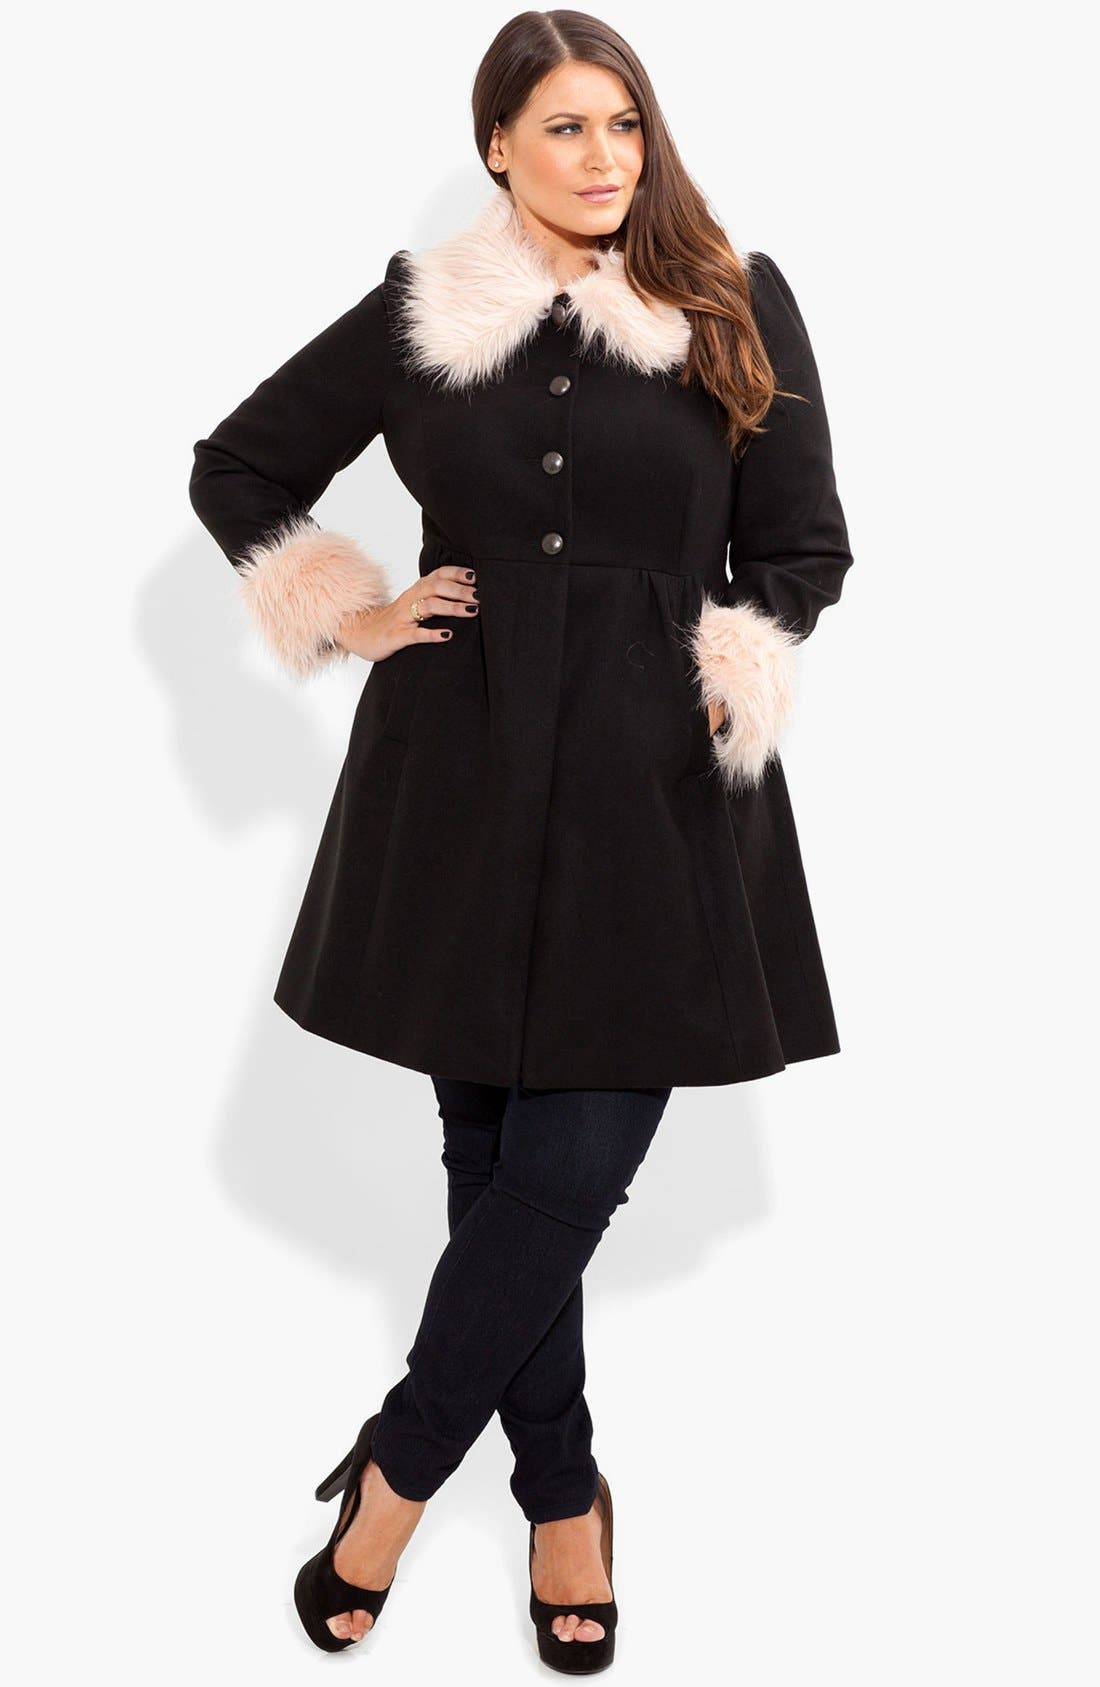 Alternate Image 1 Selected - City Chic 'Princess' Faux Fur Trim Fit & Flare Coat